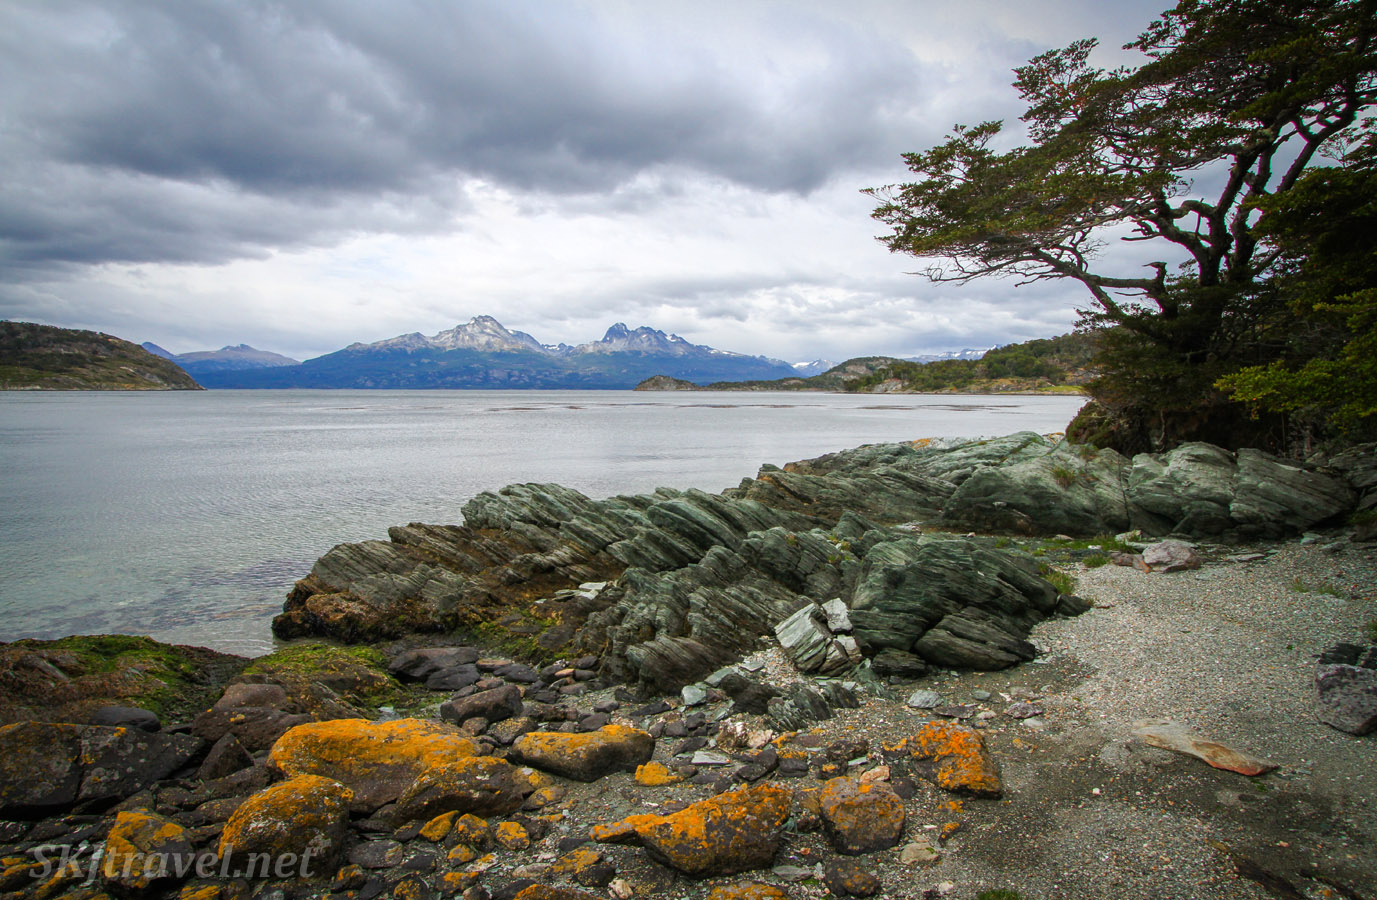 Shoreline in Tierra del Fuego National Park, Argentina.